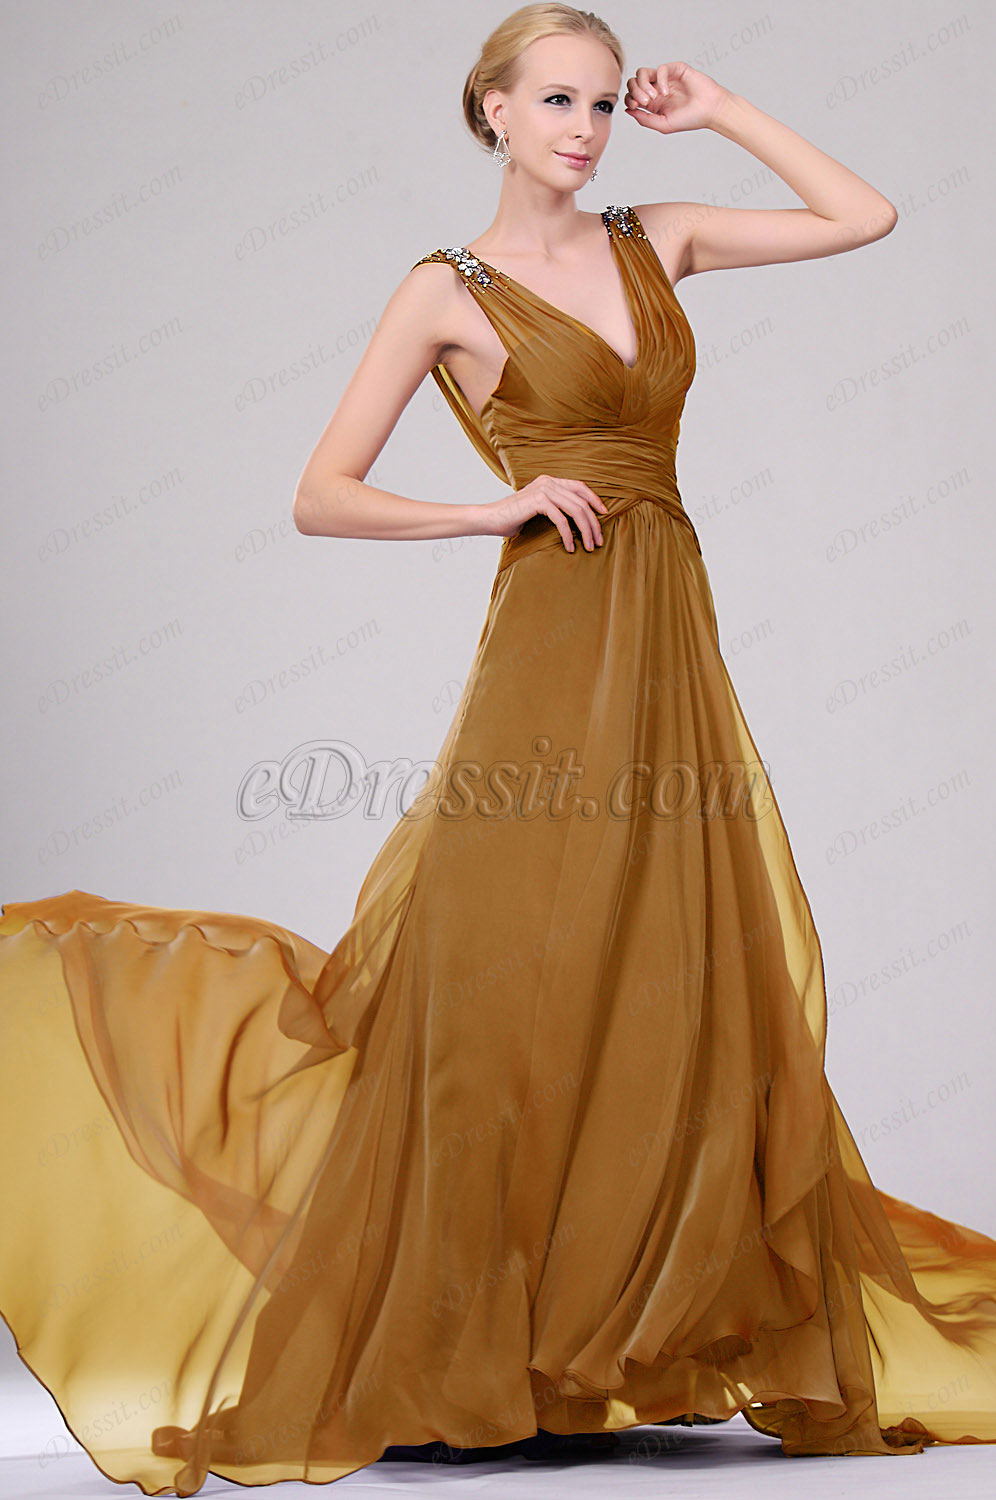 Clearance Sale !  eDressit Golden Evening Dress--Size UK8 (00109406b)